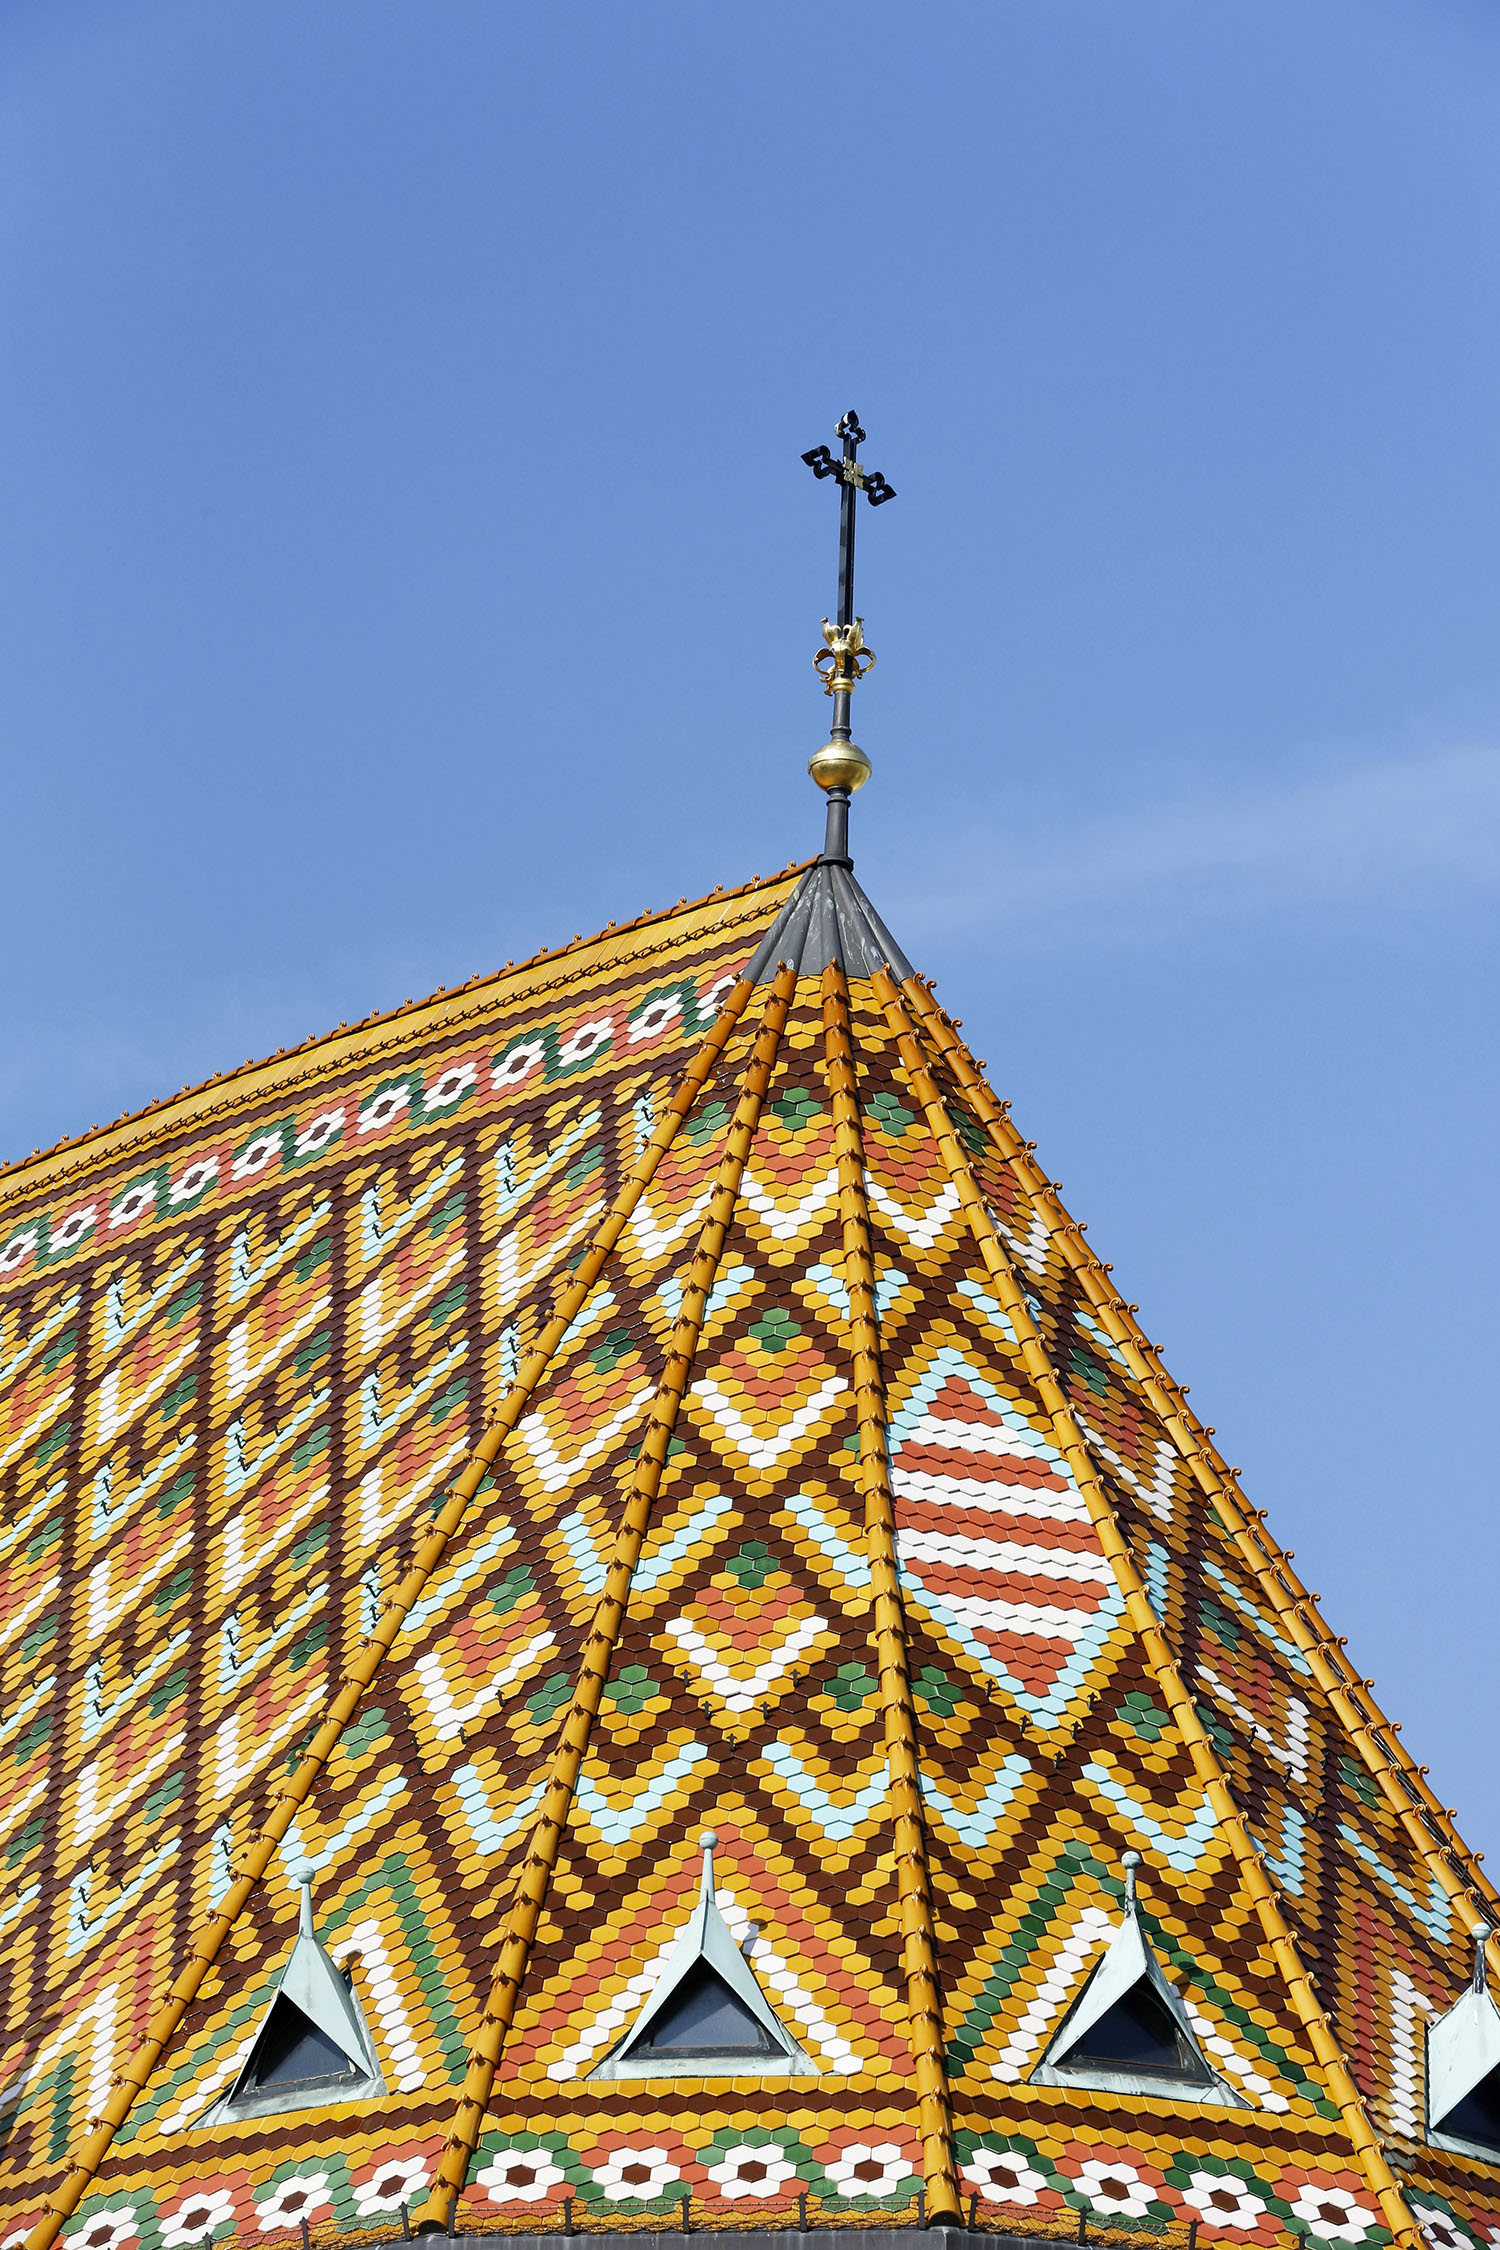 The roof of St. Mathias